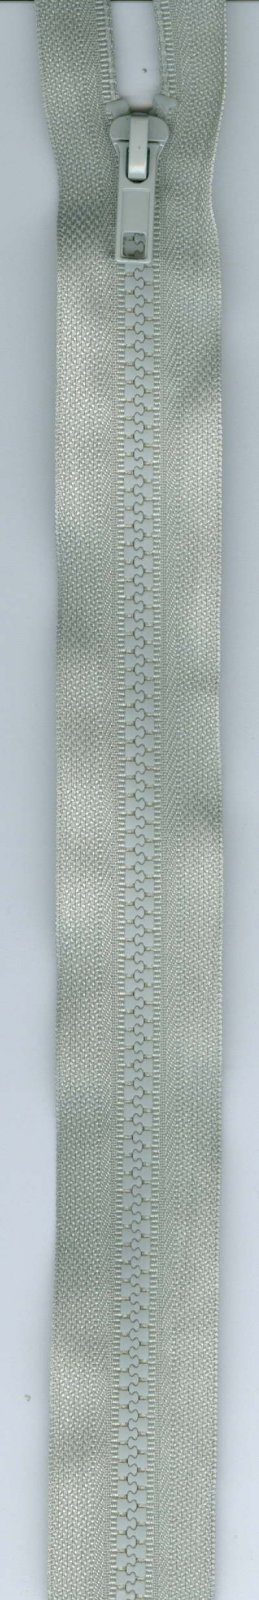 16 Separating Zipper #5 - Gray